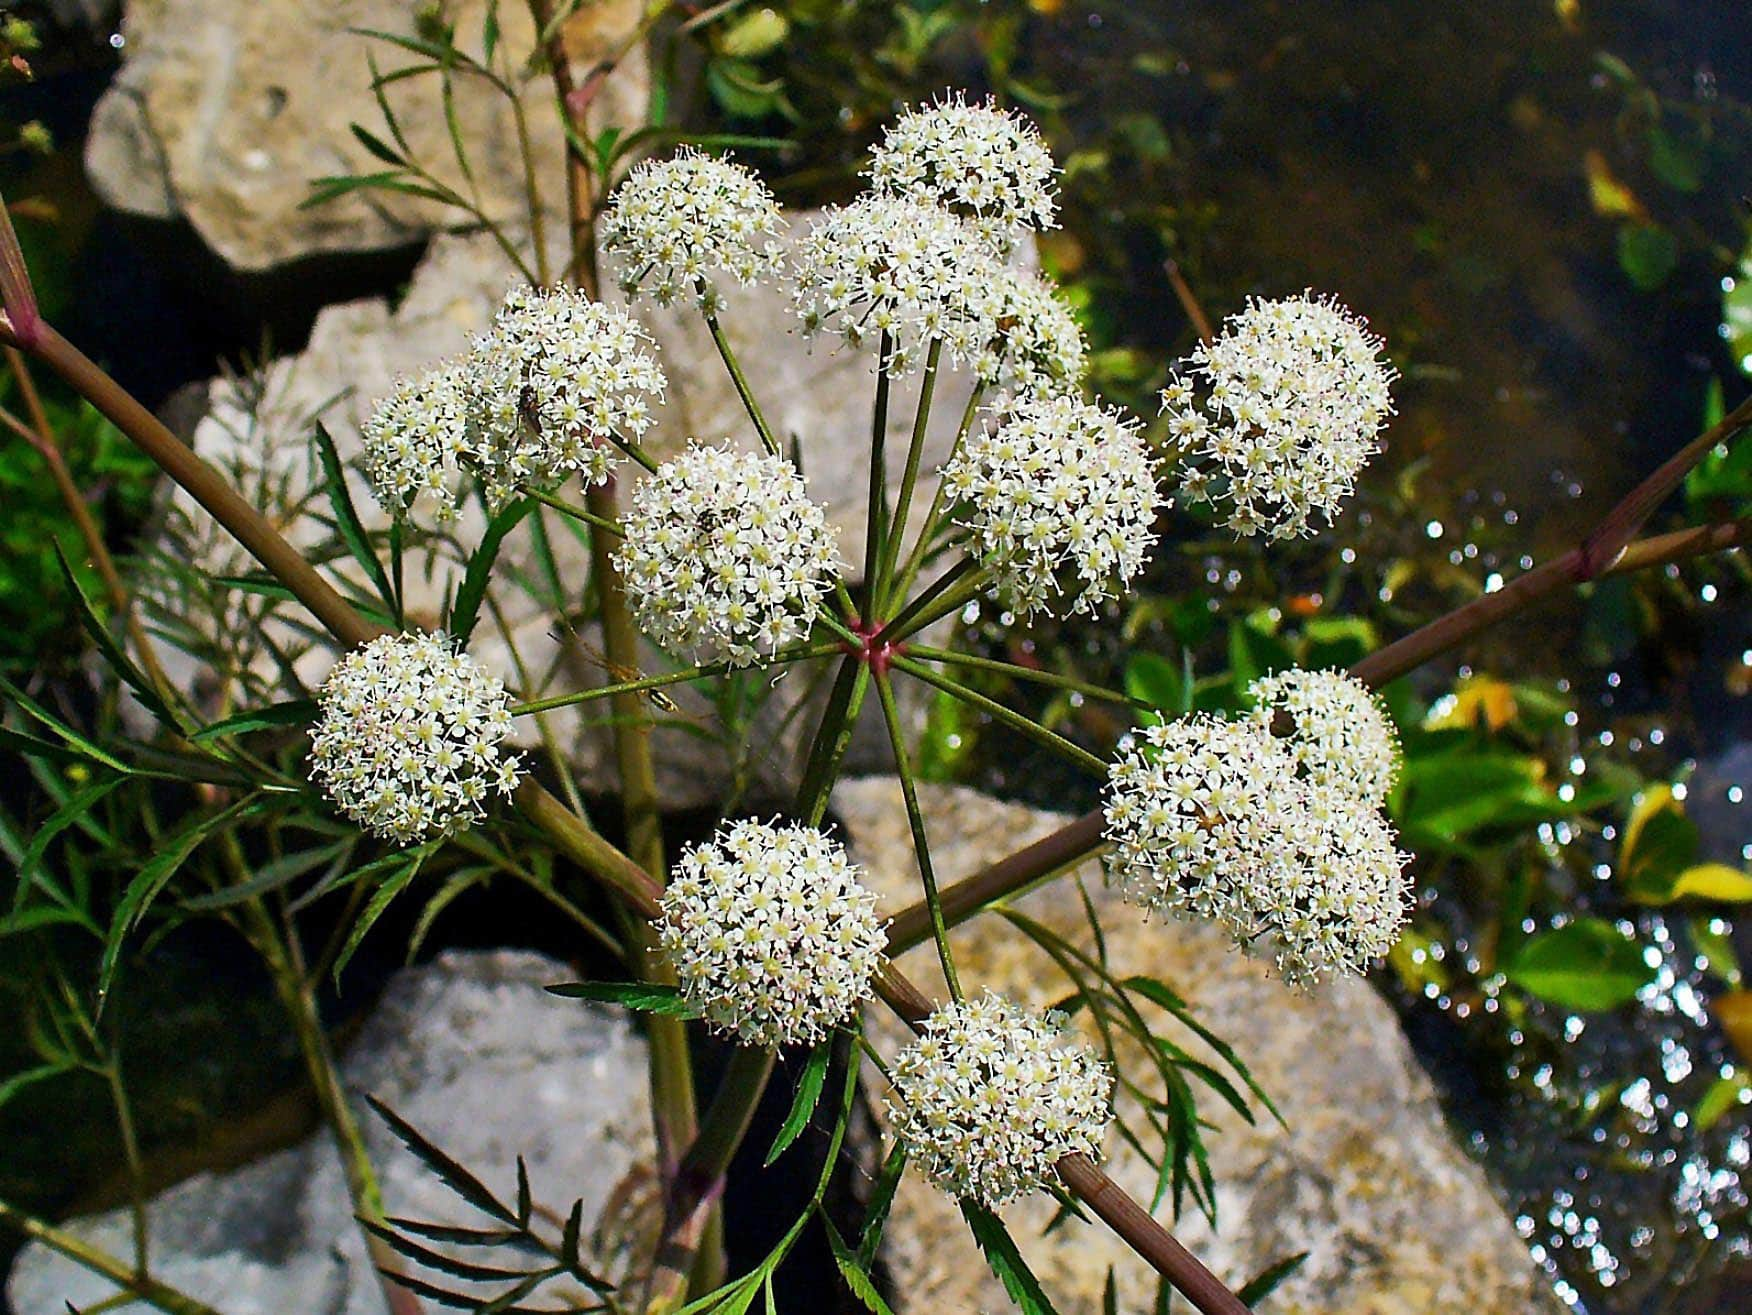 Water Hemlock Stems and Flowers - Image courtesy of H. Zell, Wikimedia Commons